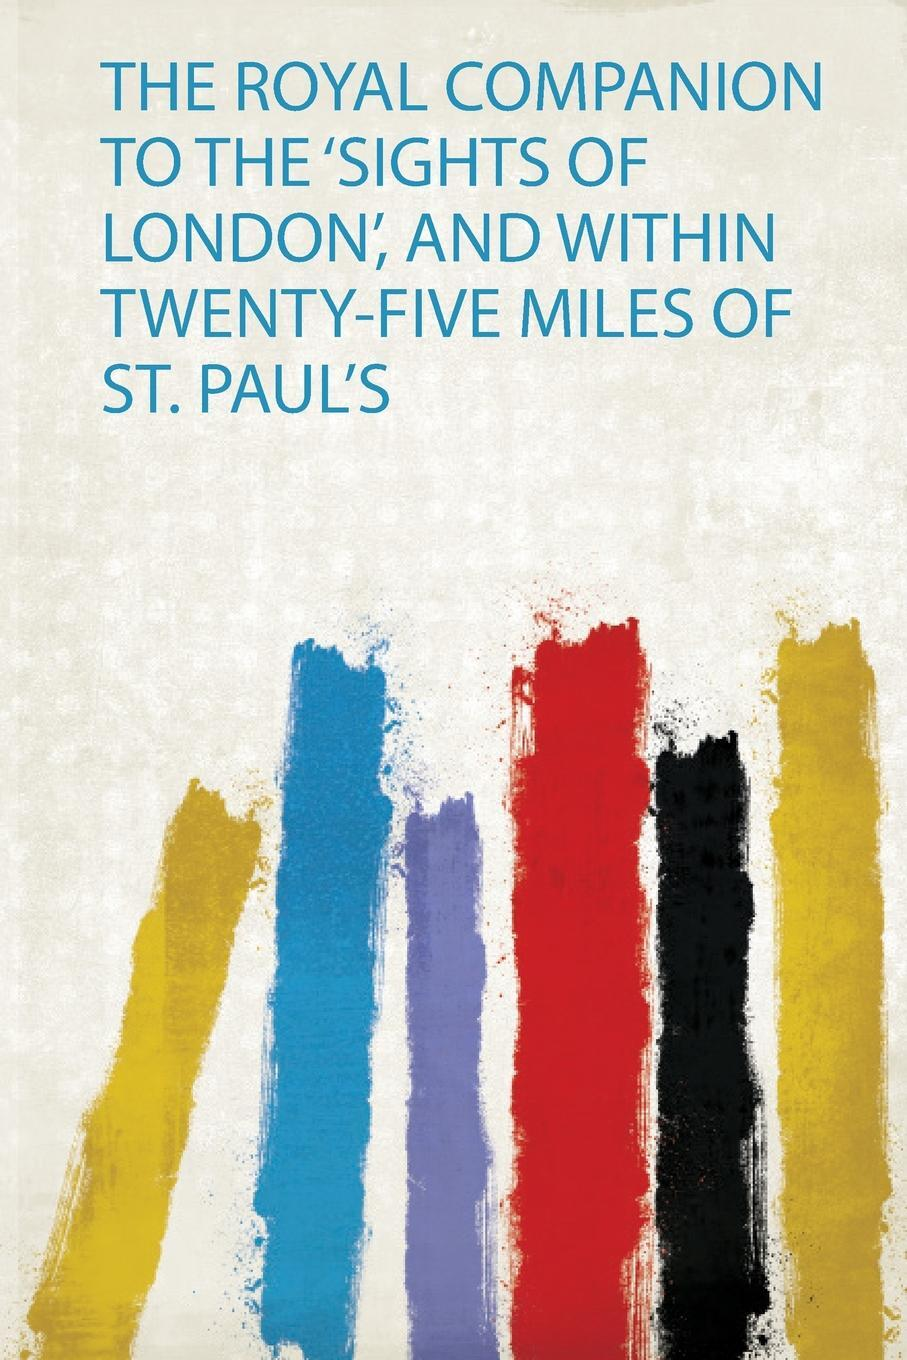 The Royal Companion to the 'Sights of London', and Within Twenty-Five Miles of St. Paul's